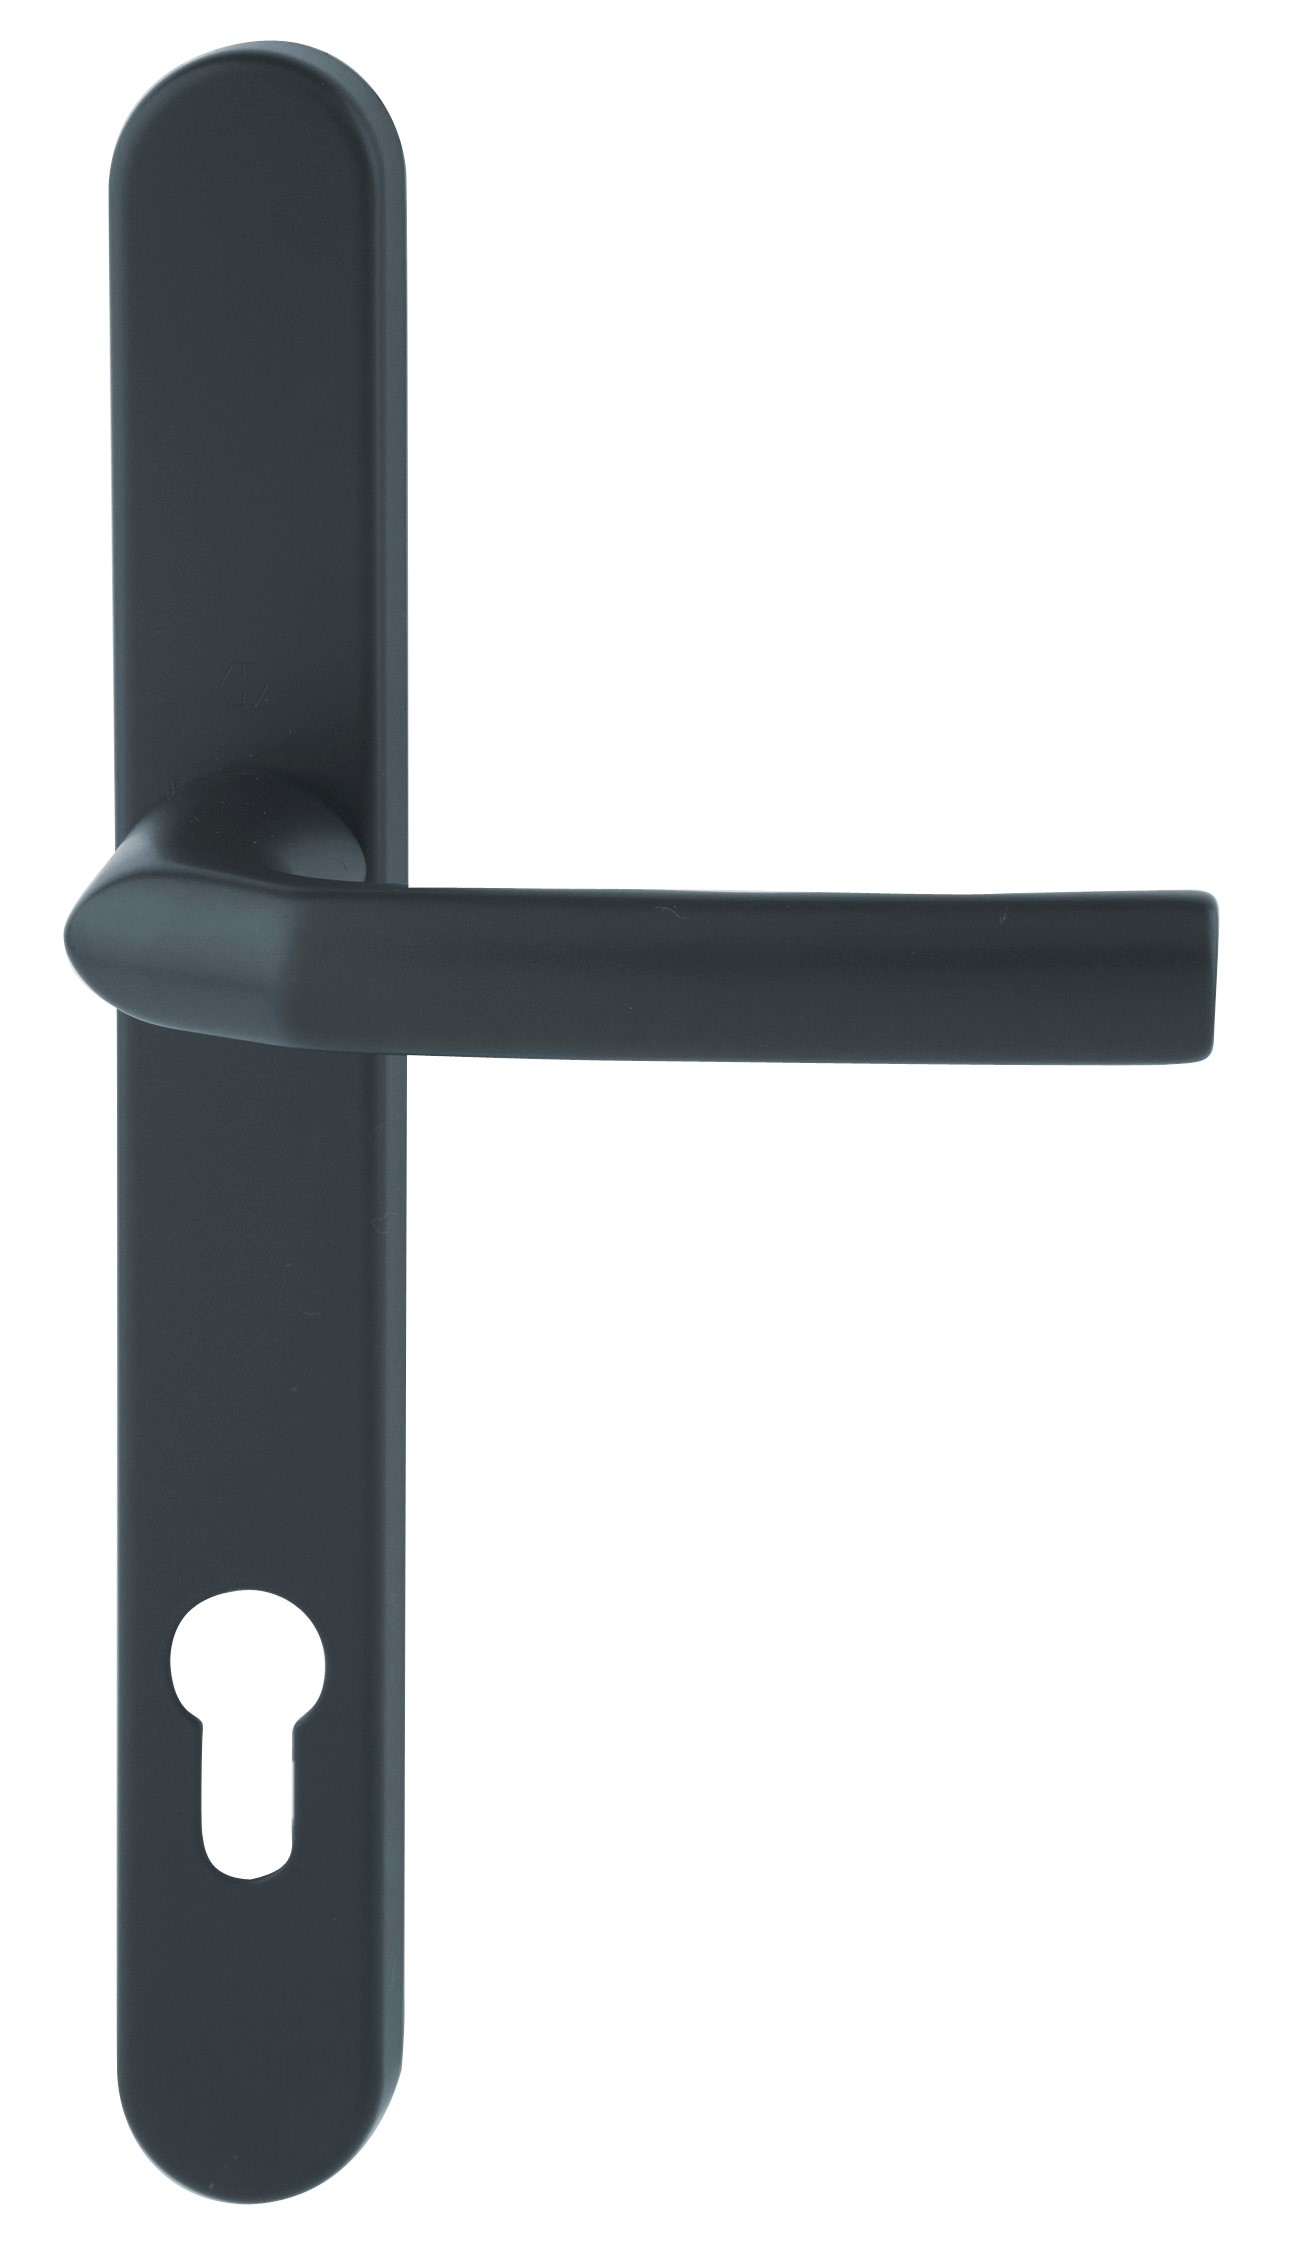 Hoppe Birmingham Long Backplate 3810N Black 92mm Centre Door Handle